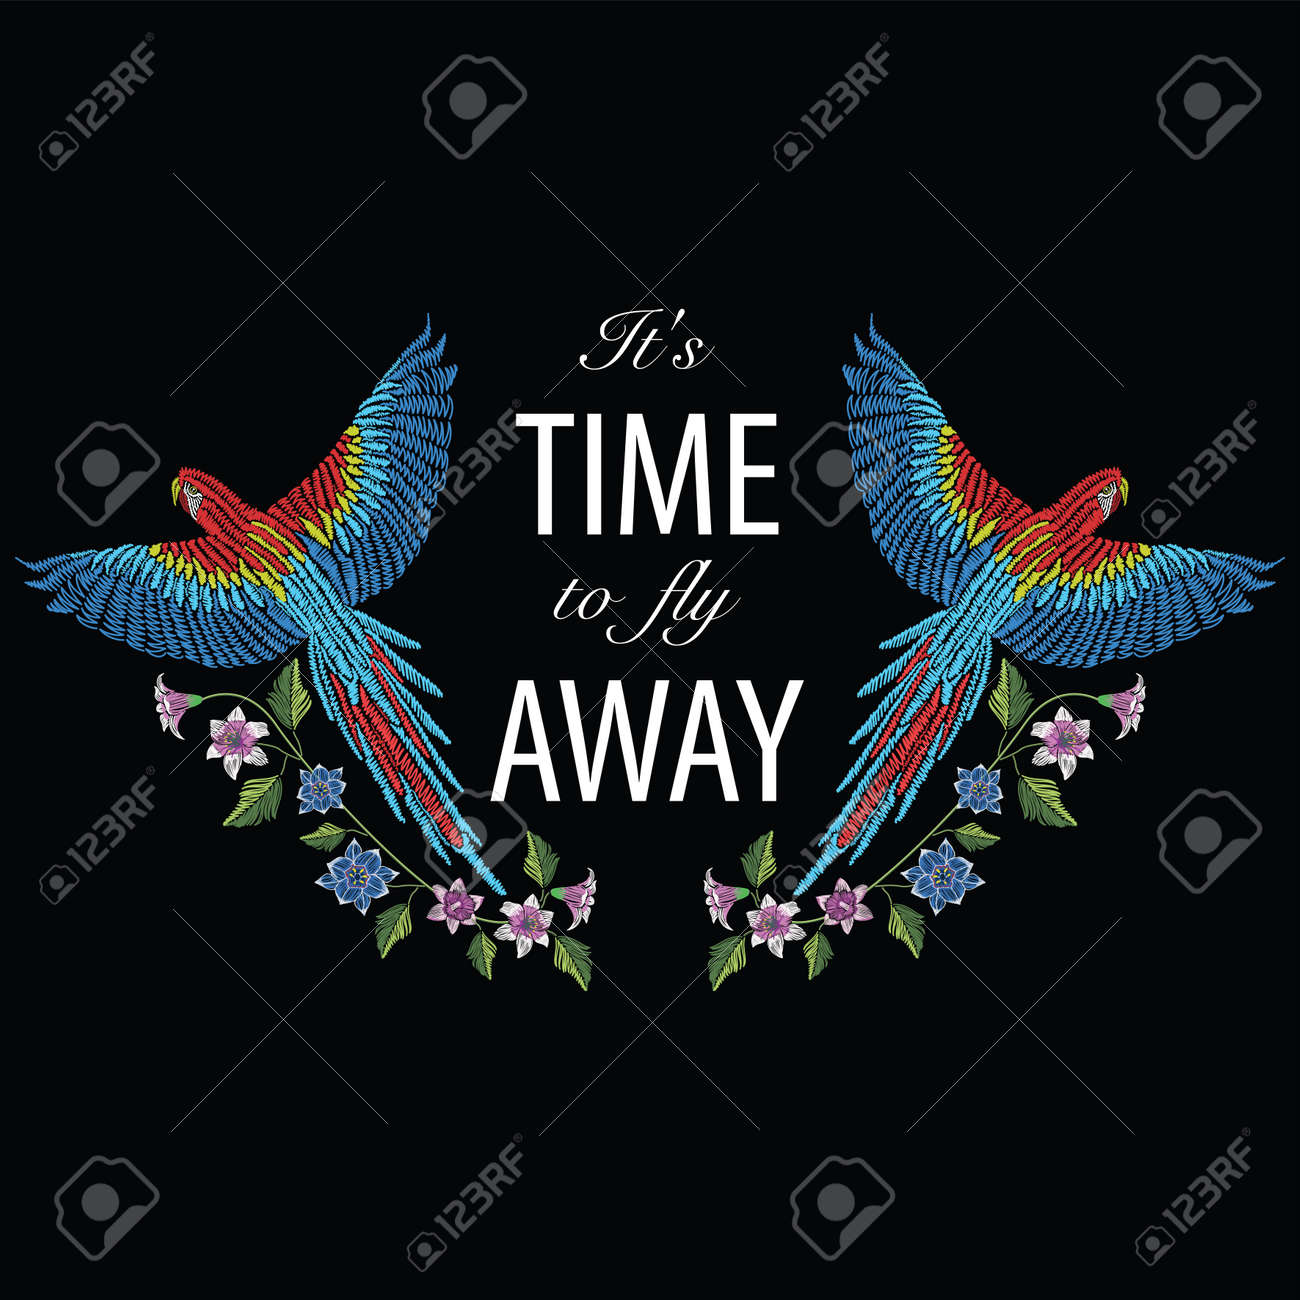 Macaw ara parrot with narcissus, tulip anfd lily flower. Embroidery stitches stylized vector illustration with text it's time to fly away. Traditional floral pattern for textile. Print for fabrics. - 82435635